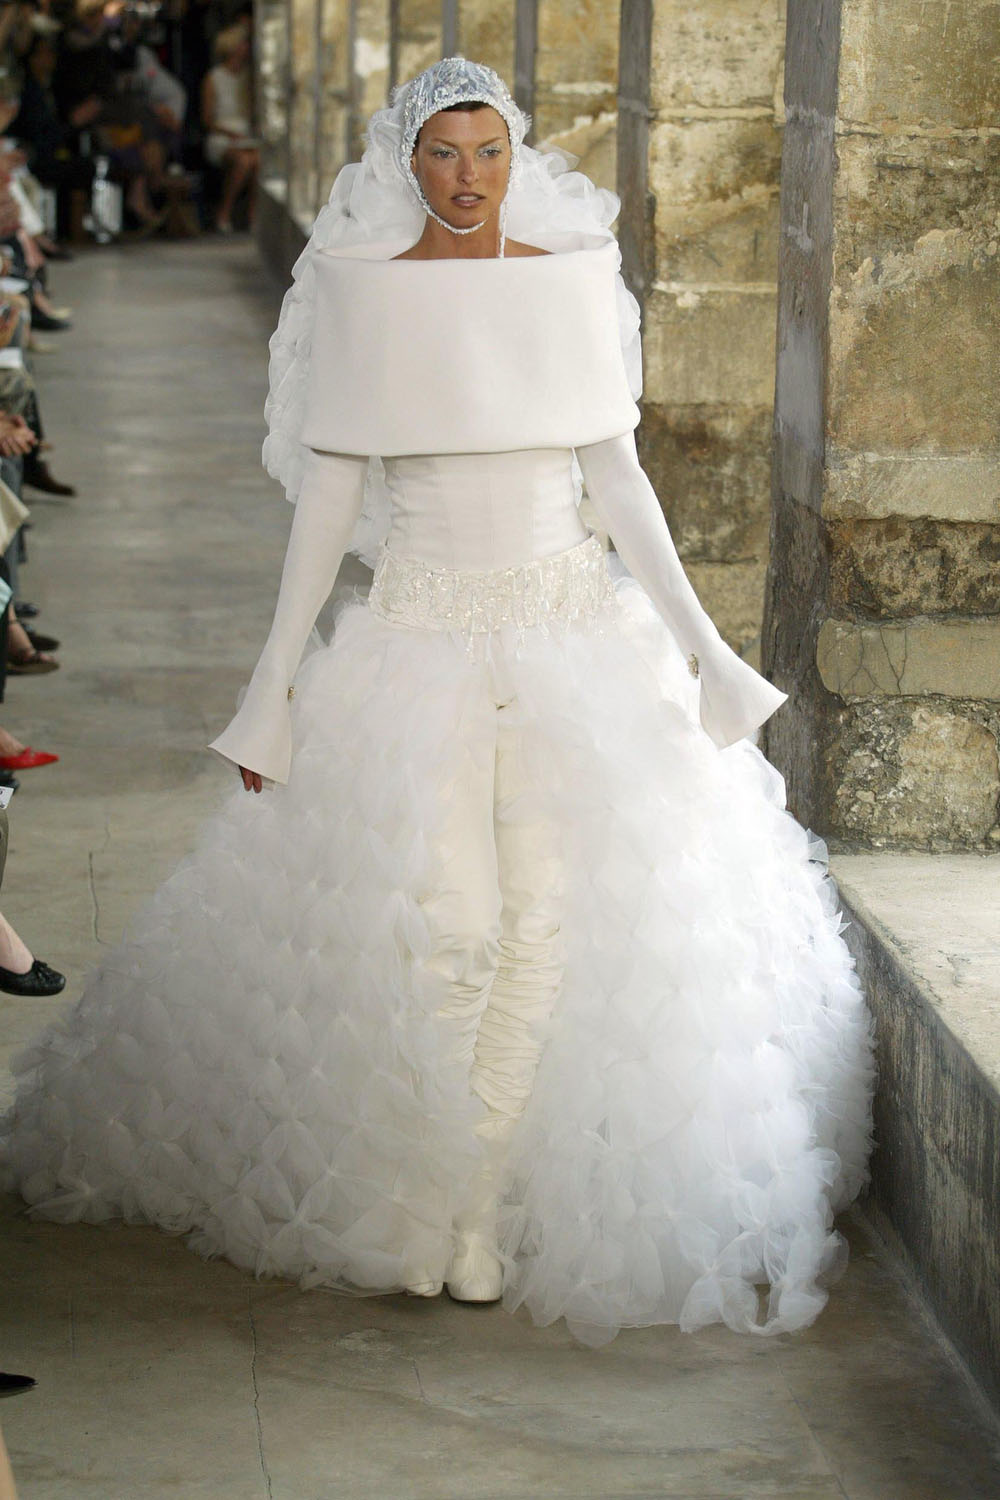 Best chanel wedding dresses these are the celebrity chanel brides best chanel wedding dresses these are the celebrity chanel brides to know junglespirit Gallery